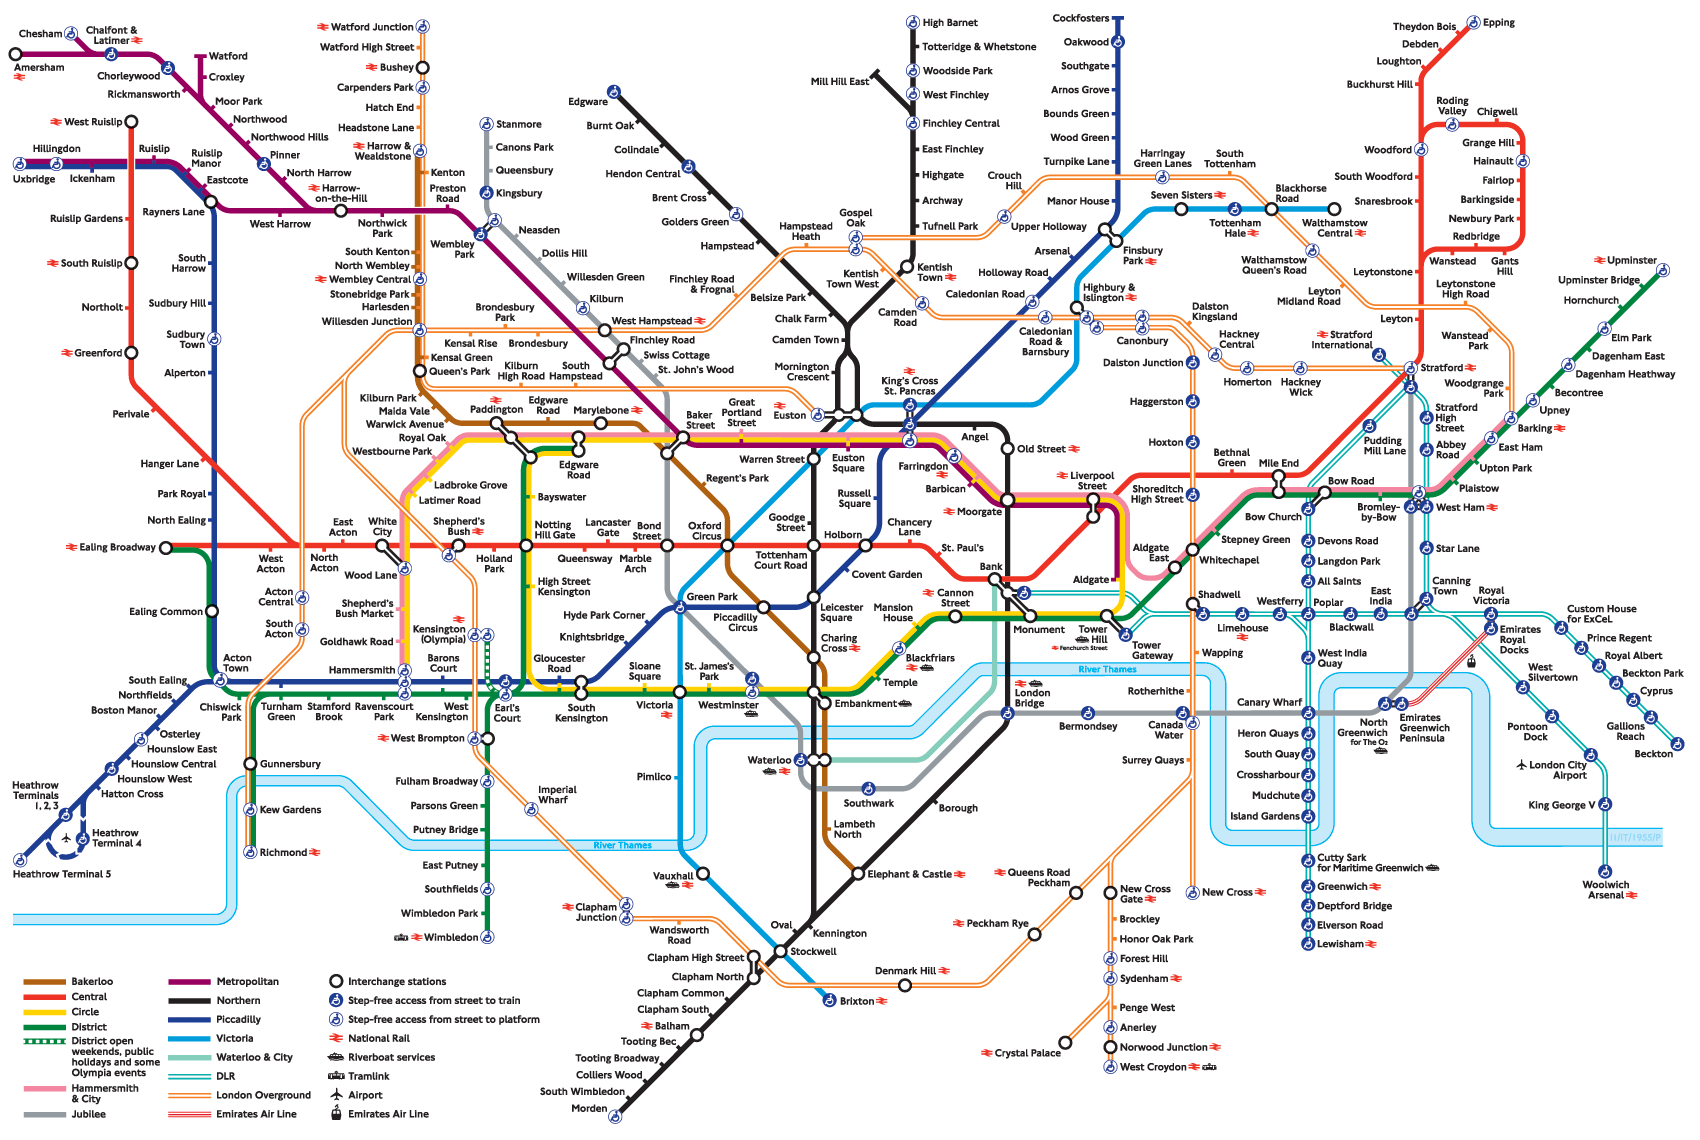 All london fetish map pity